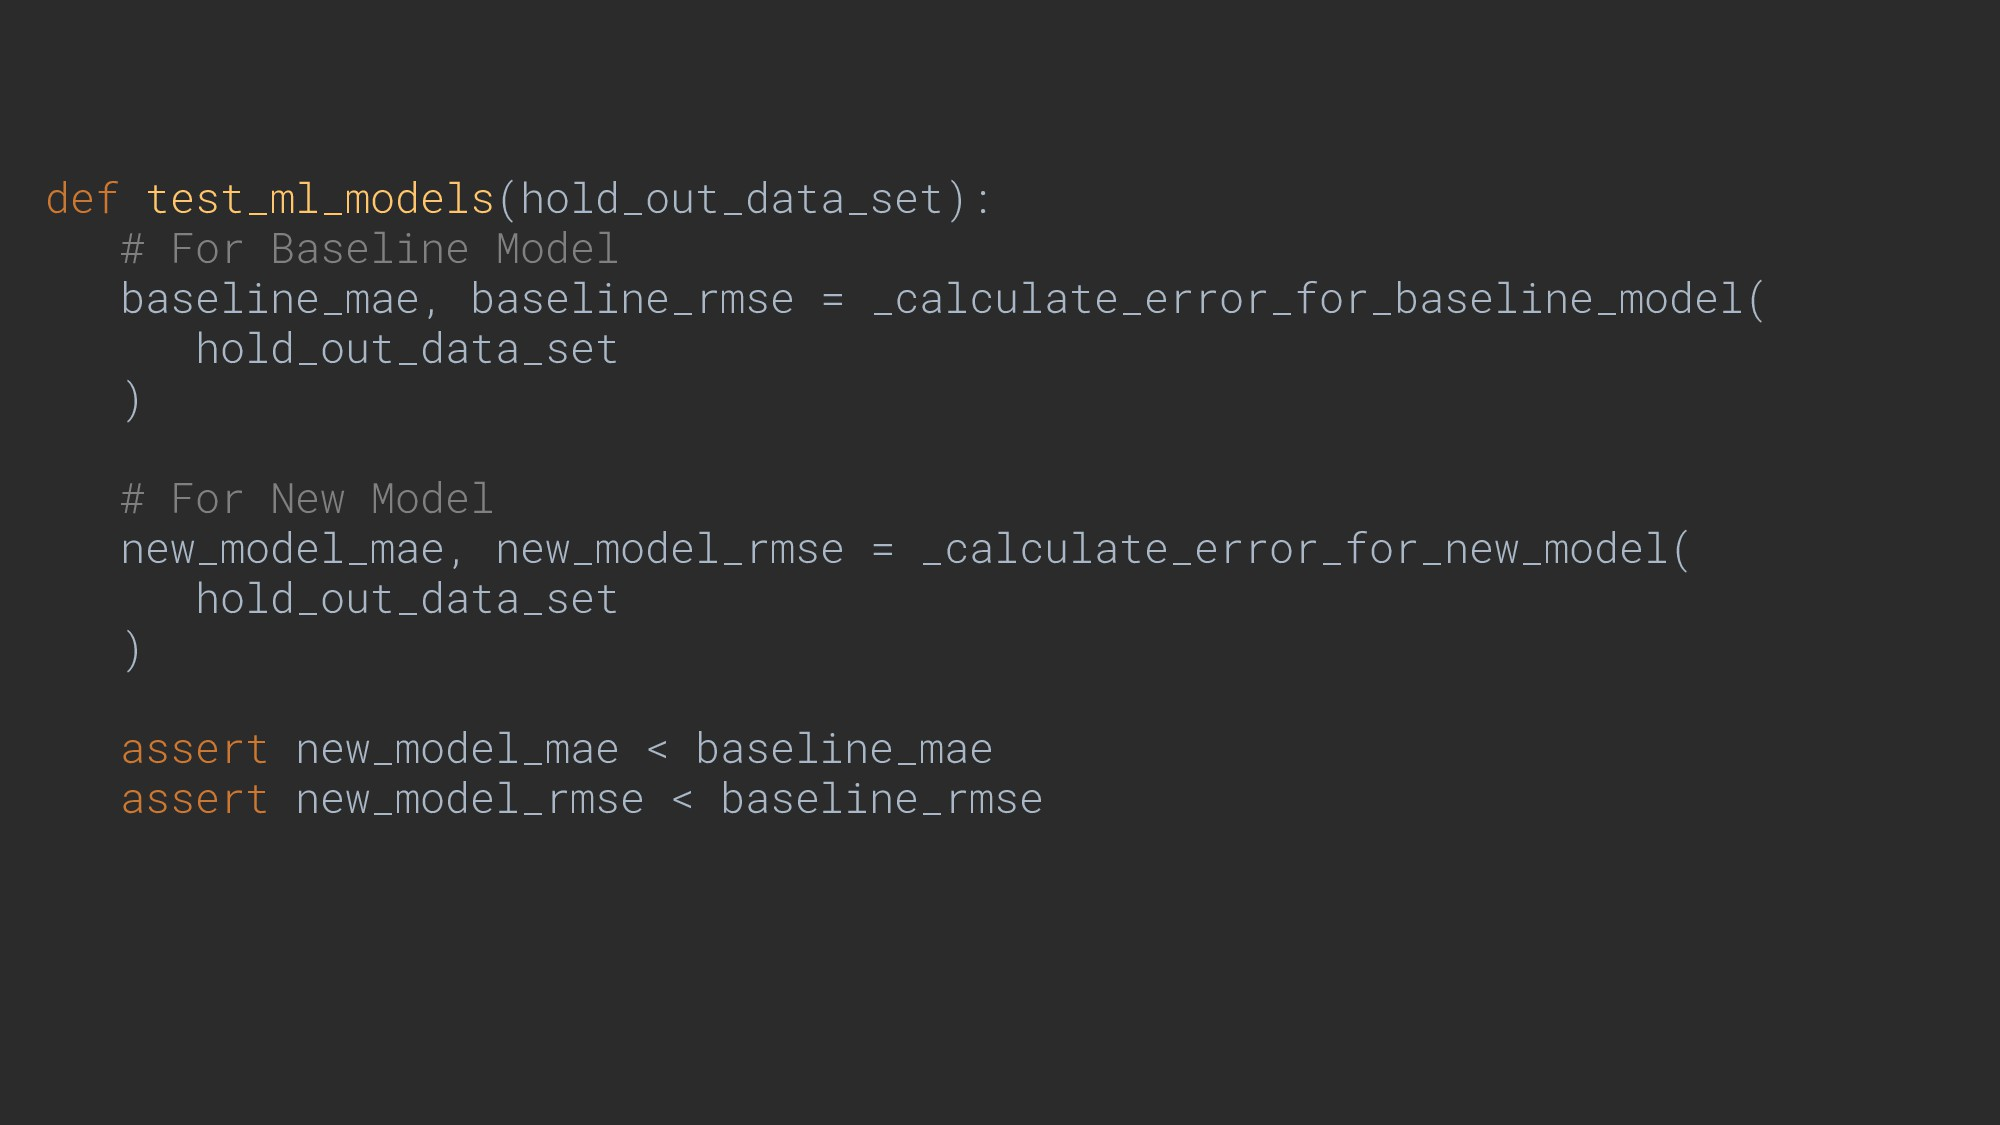 def test_ml_models(hold_out_data_set): # For Ba...